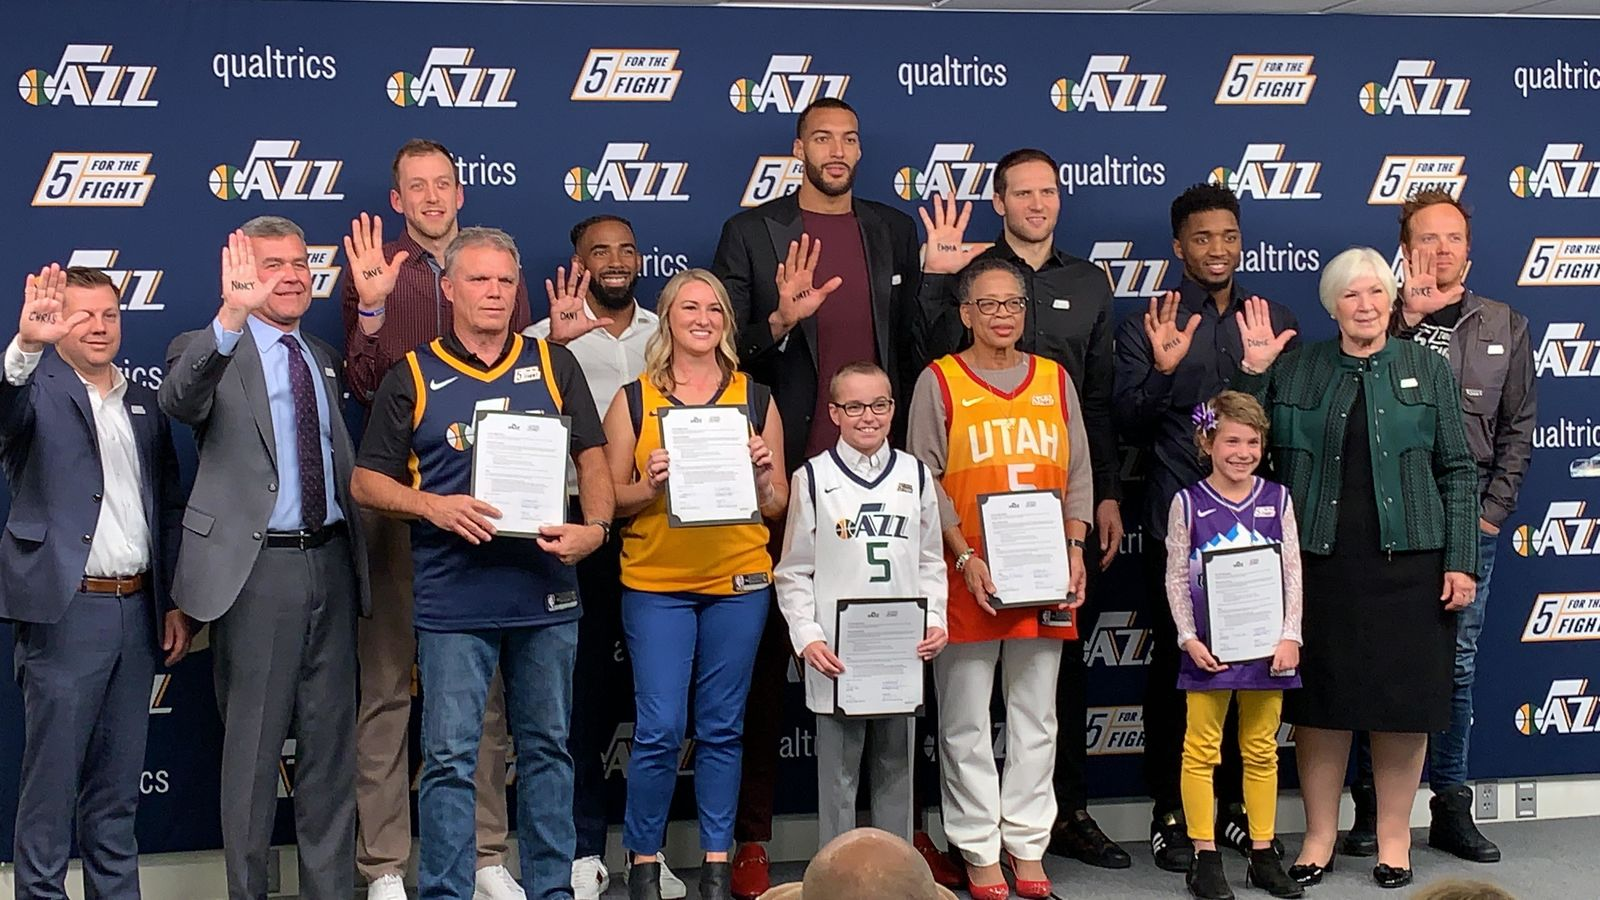 "Everyone poses for a photo op promoting ""5 For The Fight"" which aims to fund cancer research. (L-R) Steve Starks (CEO of Larry H. Miller Group of Companies), Jim Olson, president of the Utah Jazz, Joe Ingles (Jazz forward), Dave Warren (cancer fighter), Mike Conley (Jazz point guard), Dani Phillips (cancer fighter), Rudy Gobert (2-time Defensive Player of the Year, Utah Jazz Center, future All-Star) with Wyatt Page (young cancer fighter), Emma Houston (cancer fighter), Bojan Bogdanovic (Utah Jazz forward), Donovan ""Spida"" Mitchell (Utah Jazz guard, future MVP) with Baylee Semrow (young cancer fighter), Gail Miller (owner and chairperson of the Larry H. Miller Group of Companies), Ryan Smith (co-founder and CEO of Qualtrics and co-founder of Five For The Fight). (Photo: Adam Forgie, KUTV)"